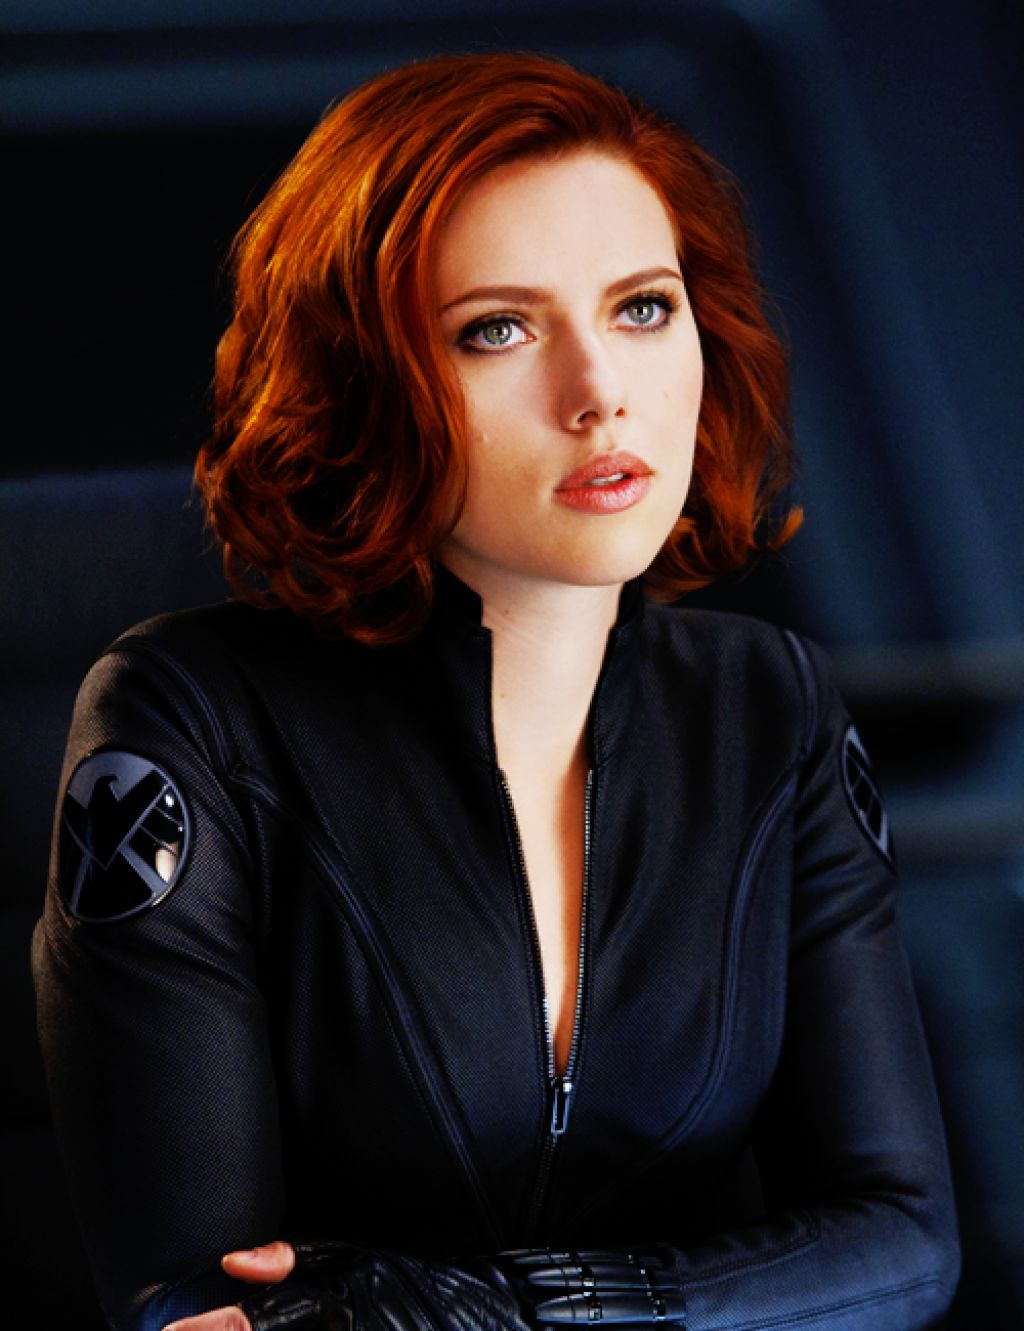 Scarlett Johansson Red Highlights Colors Scarlett Johansson Hairstyle Scarlett Johansson Red Hair Hair Inspiration Color